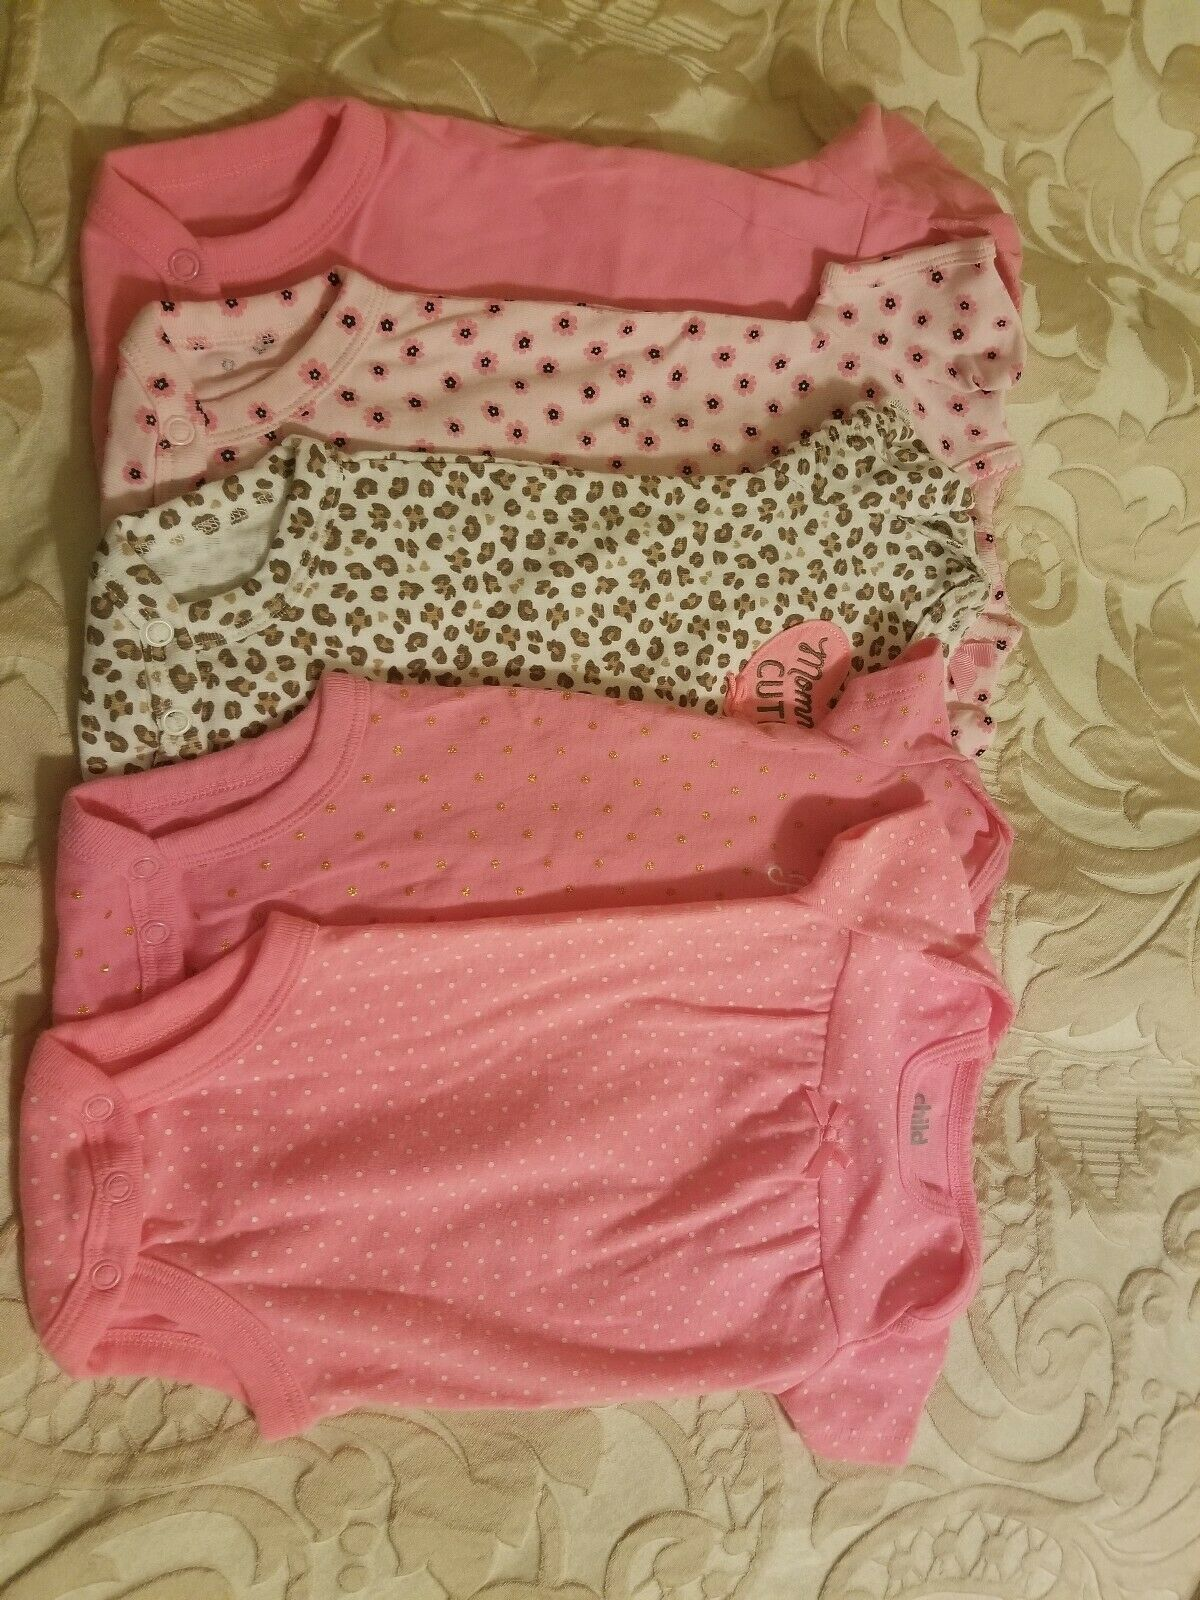 bc56f1de3 Carters Child of Mine 5 bodysuit for girl, size 0-3 months - $14.03